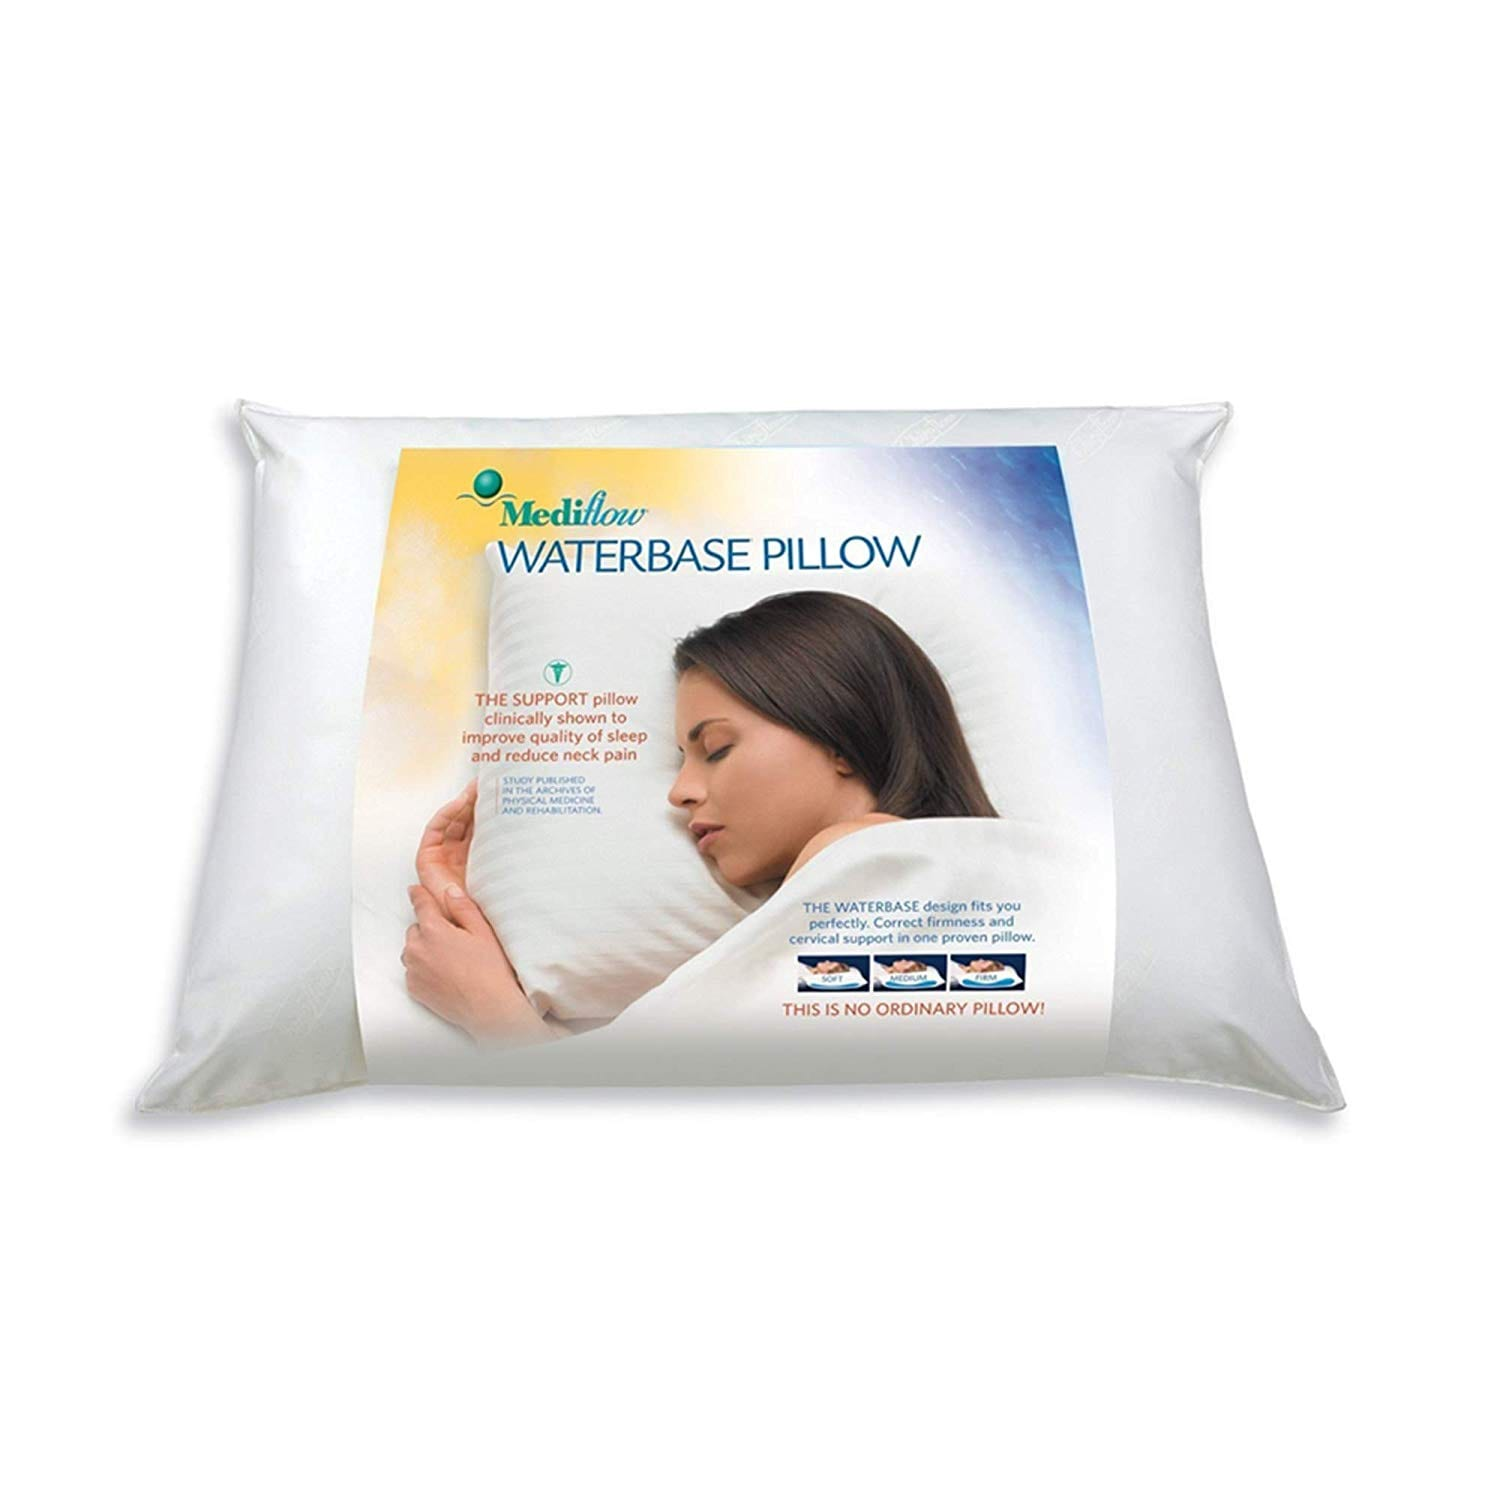 Mediflow best pillow for neck pain review by www.dailysleep.org